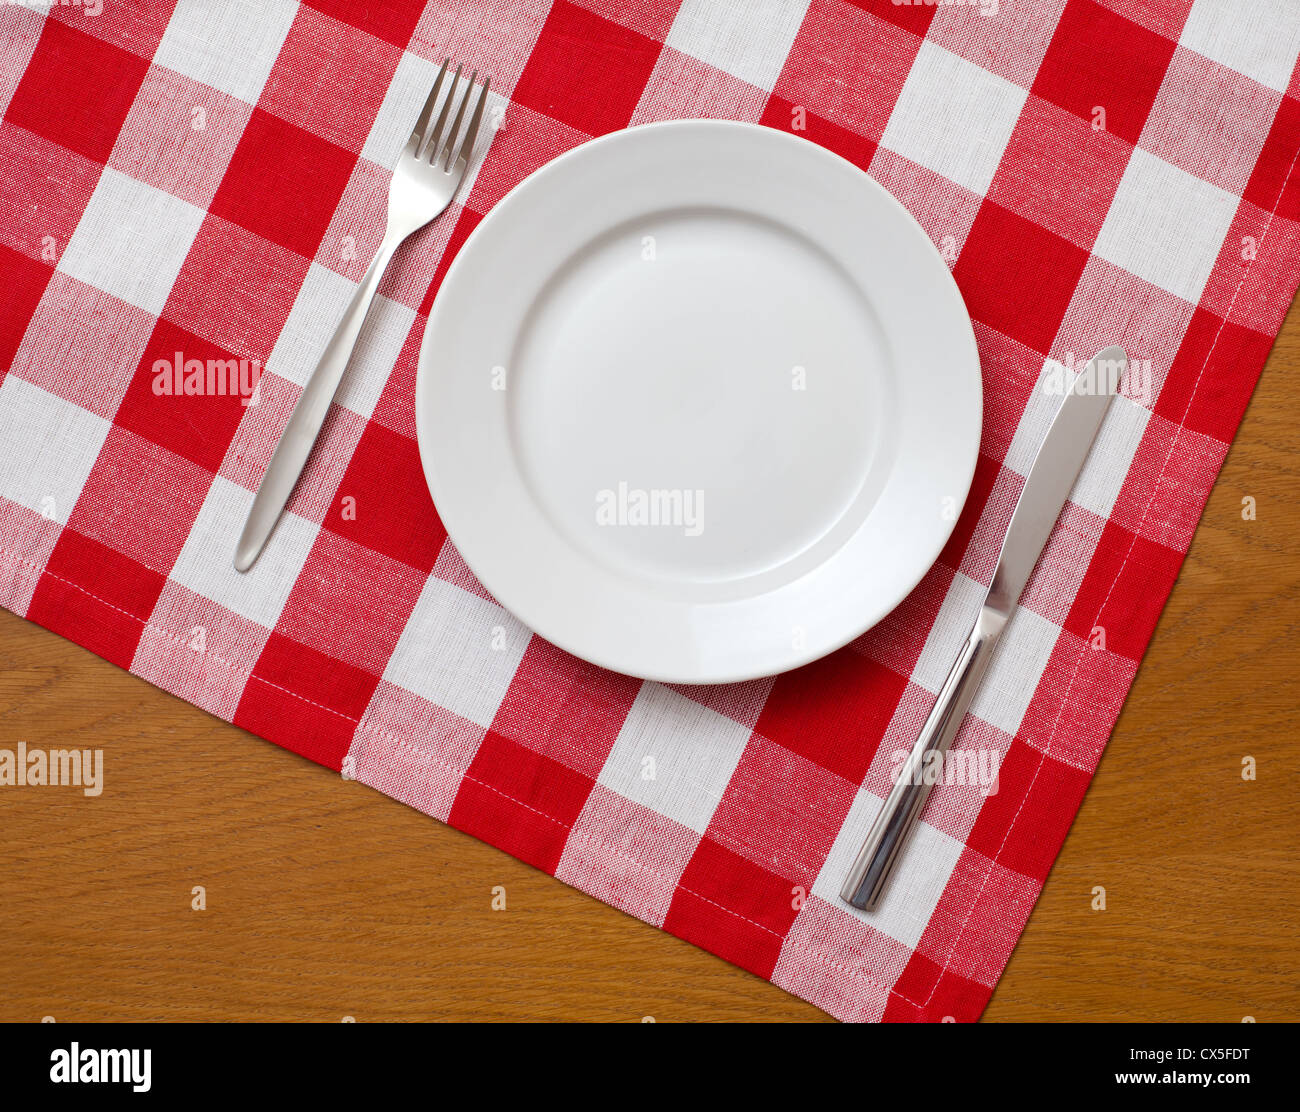 Knife, white plate and fork on wooden table with red checked tablecloth - Stock Image